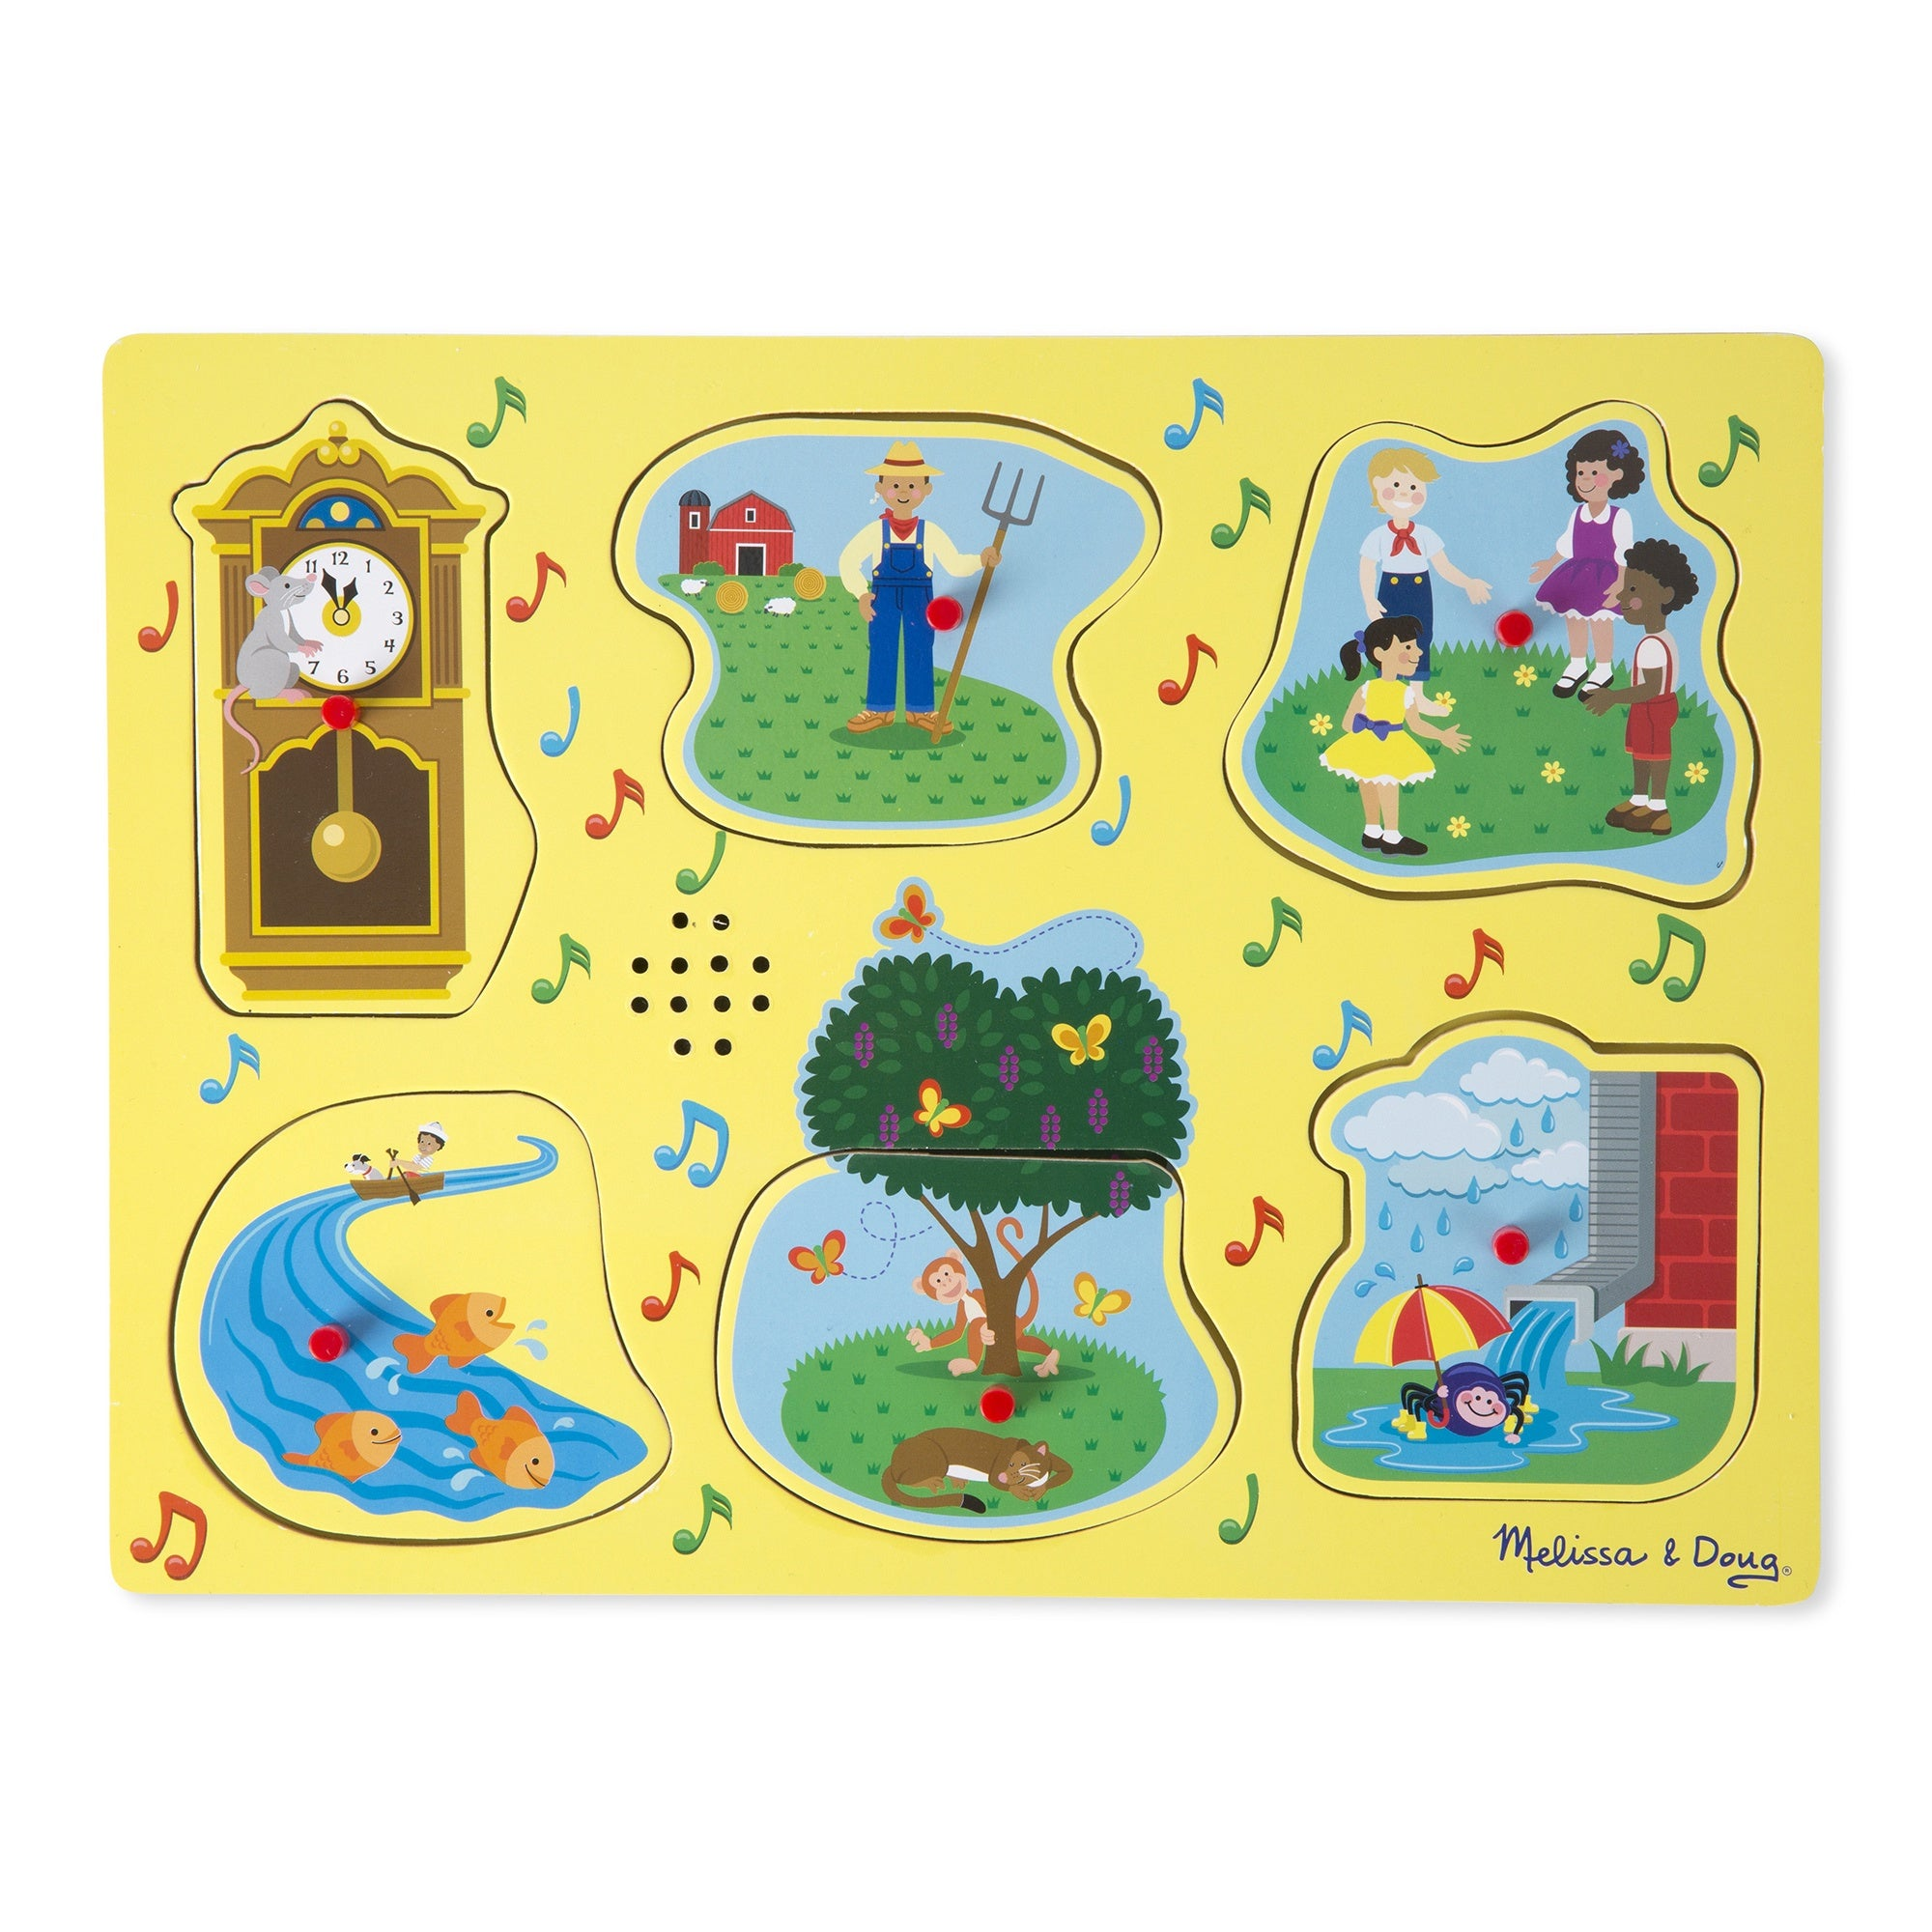 Melissa & Doug See & Hear Sound Puzzle Sing-Along Nursery Rhymes Ye